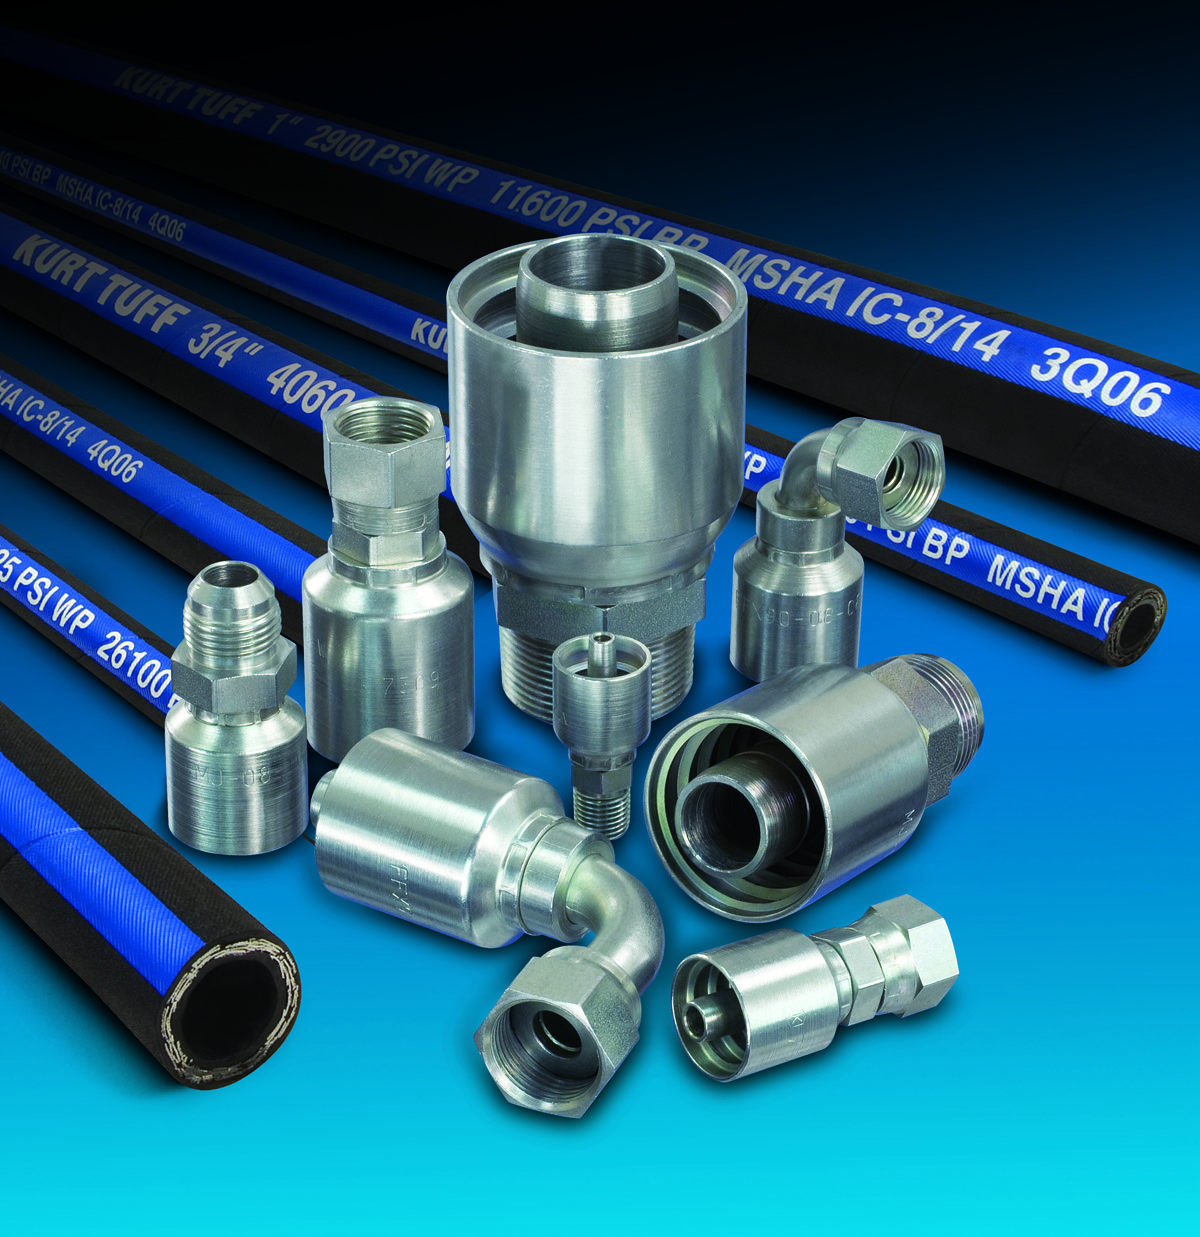 We only use the best at BP&E - Kurt Hydraulic manufactures and sells only the highest quality high pressure hydraulic hose, high pressure hose fittings, and other hydraulic system components. Our hydraulic hose products meet SAE standards and are designed for use in any hydraulic application.